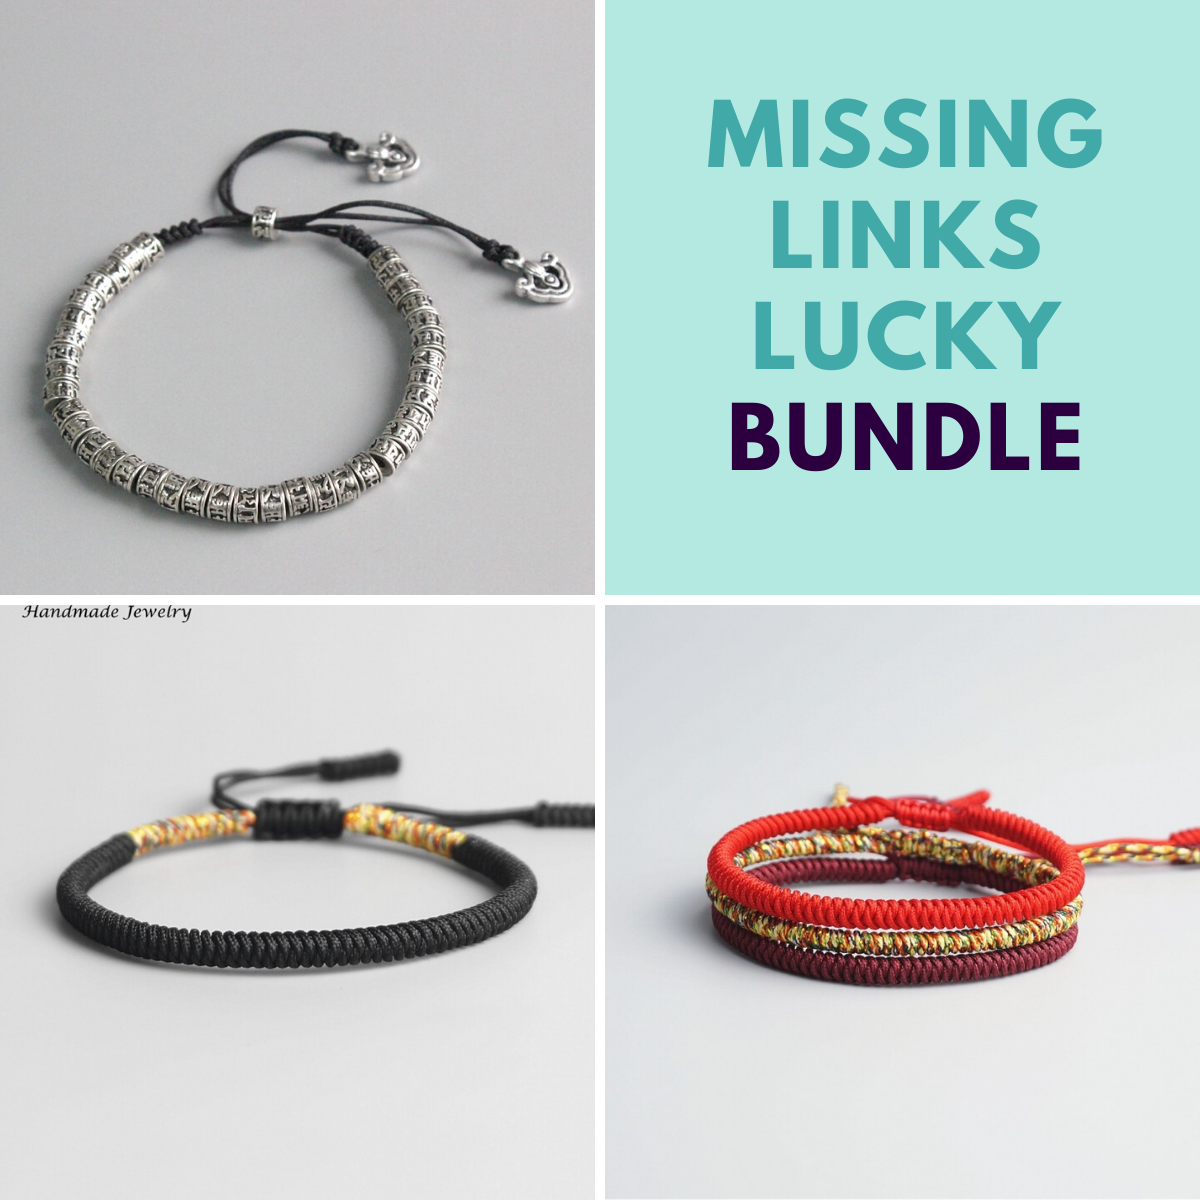 Missing Links Lucky Bundle